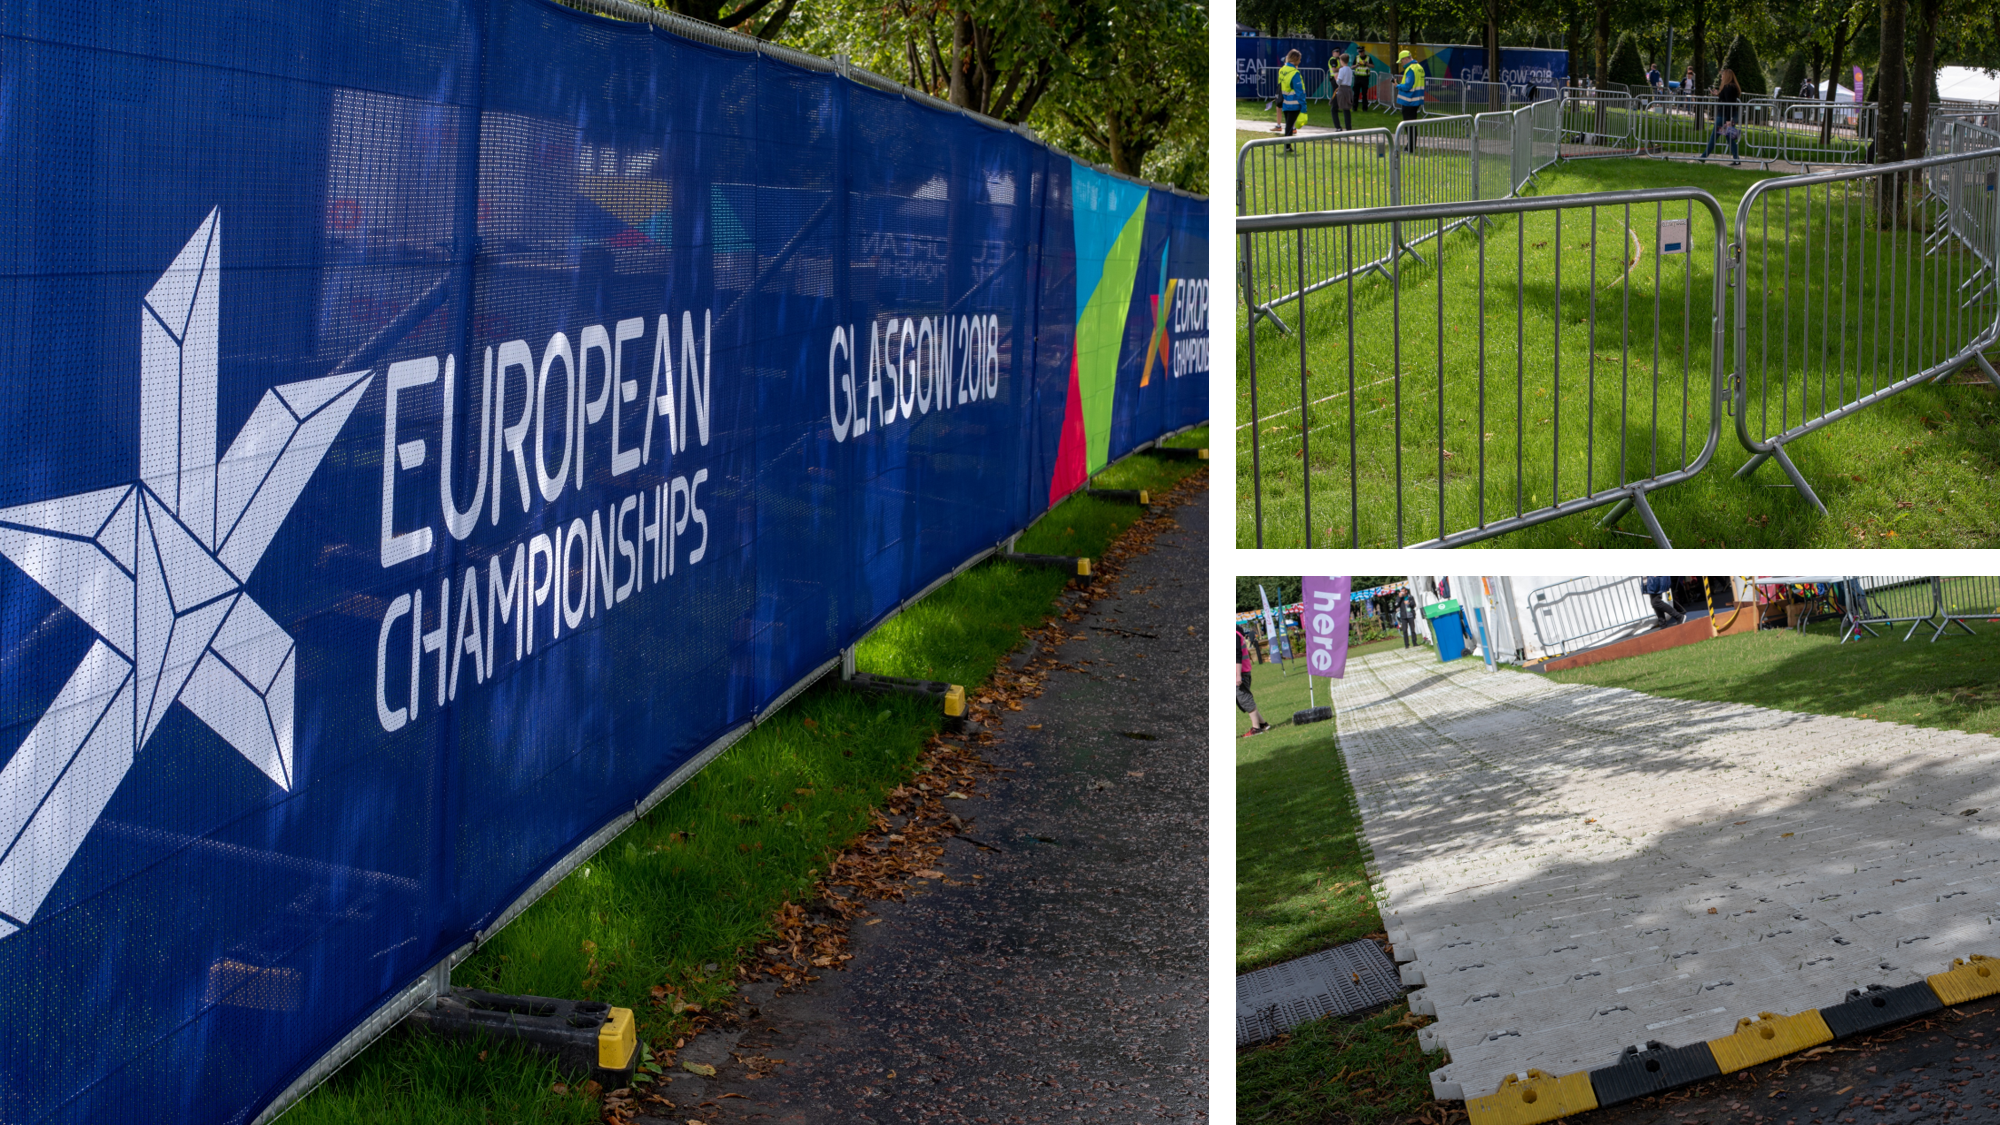 GAP supported the European Championships 2018